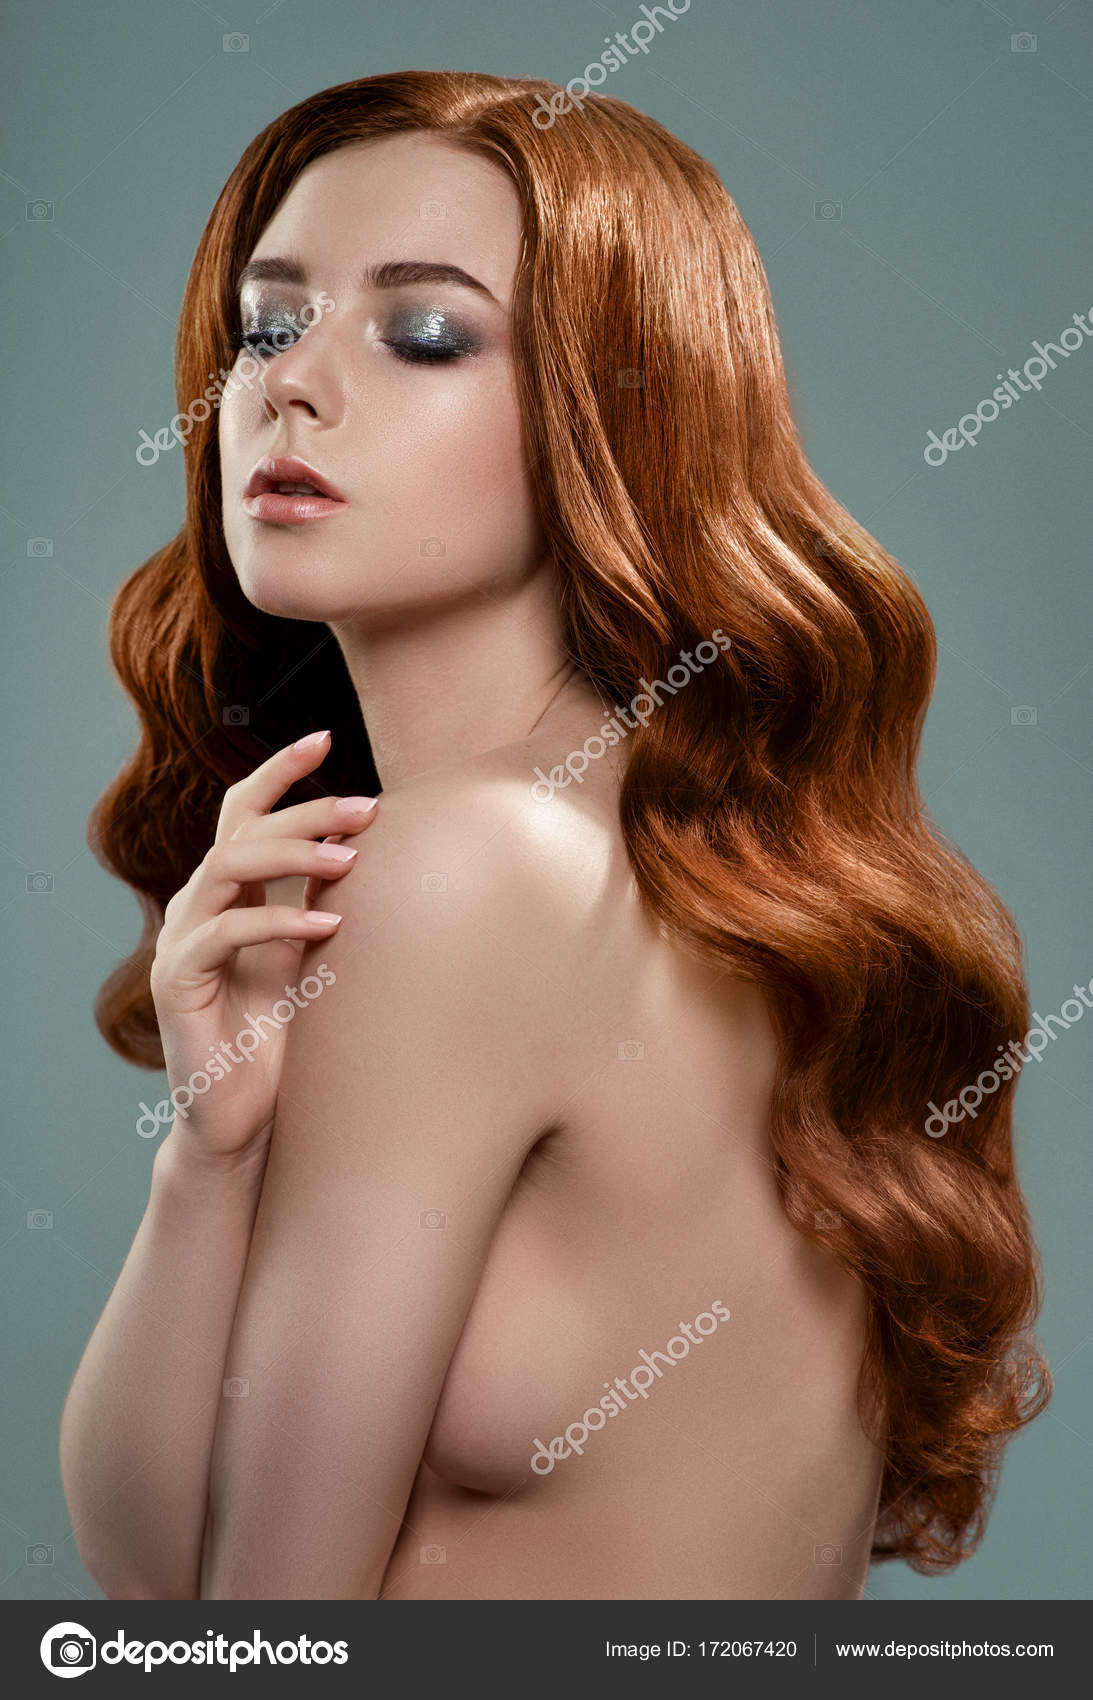 Red women nude Adult hair